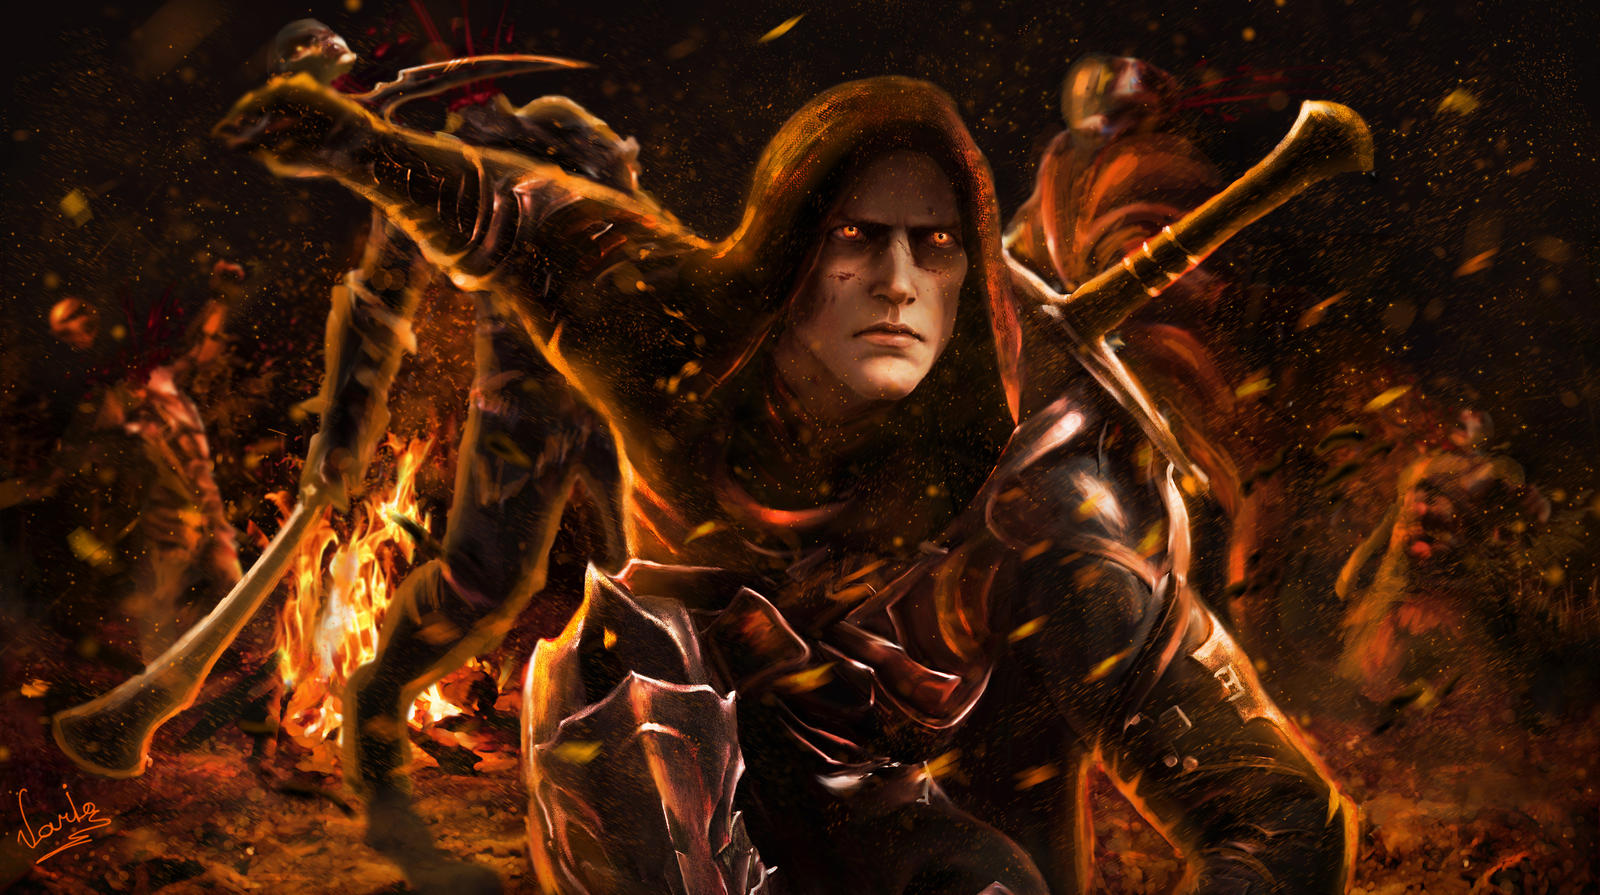 Black Hand Of Sauron Shadow Mordor By Variones On